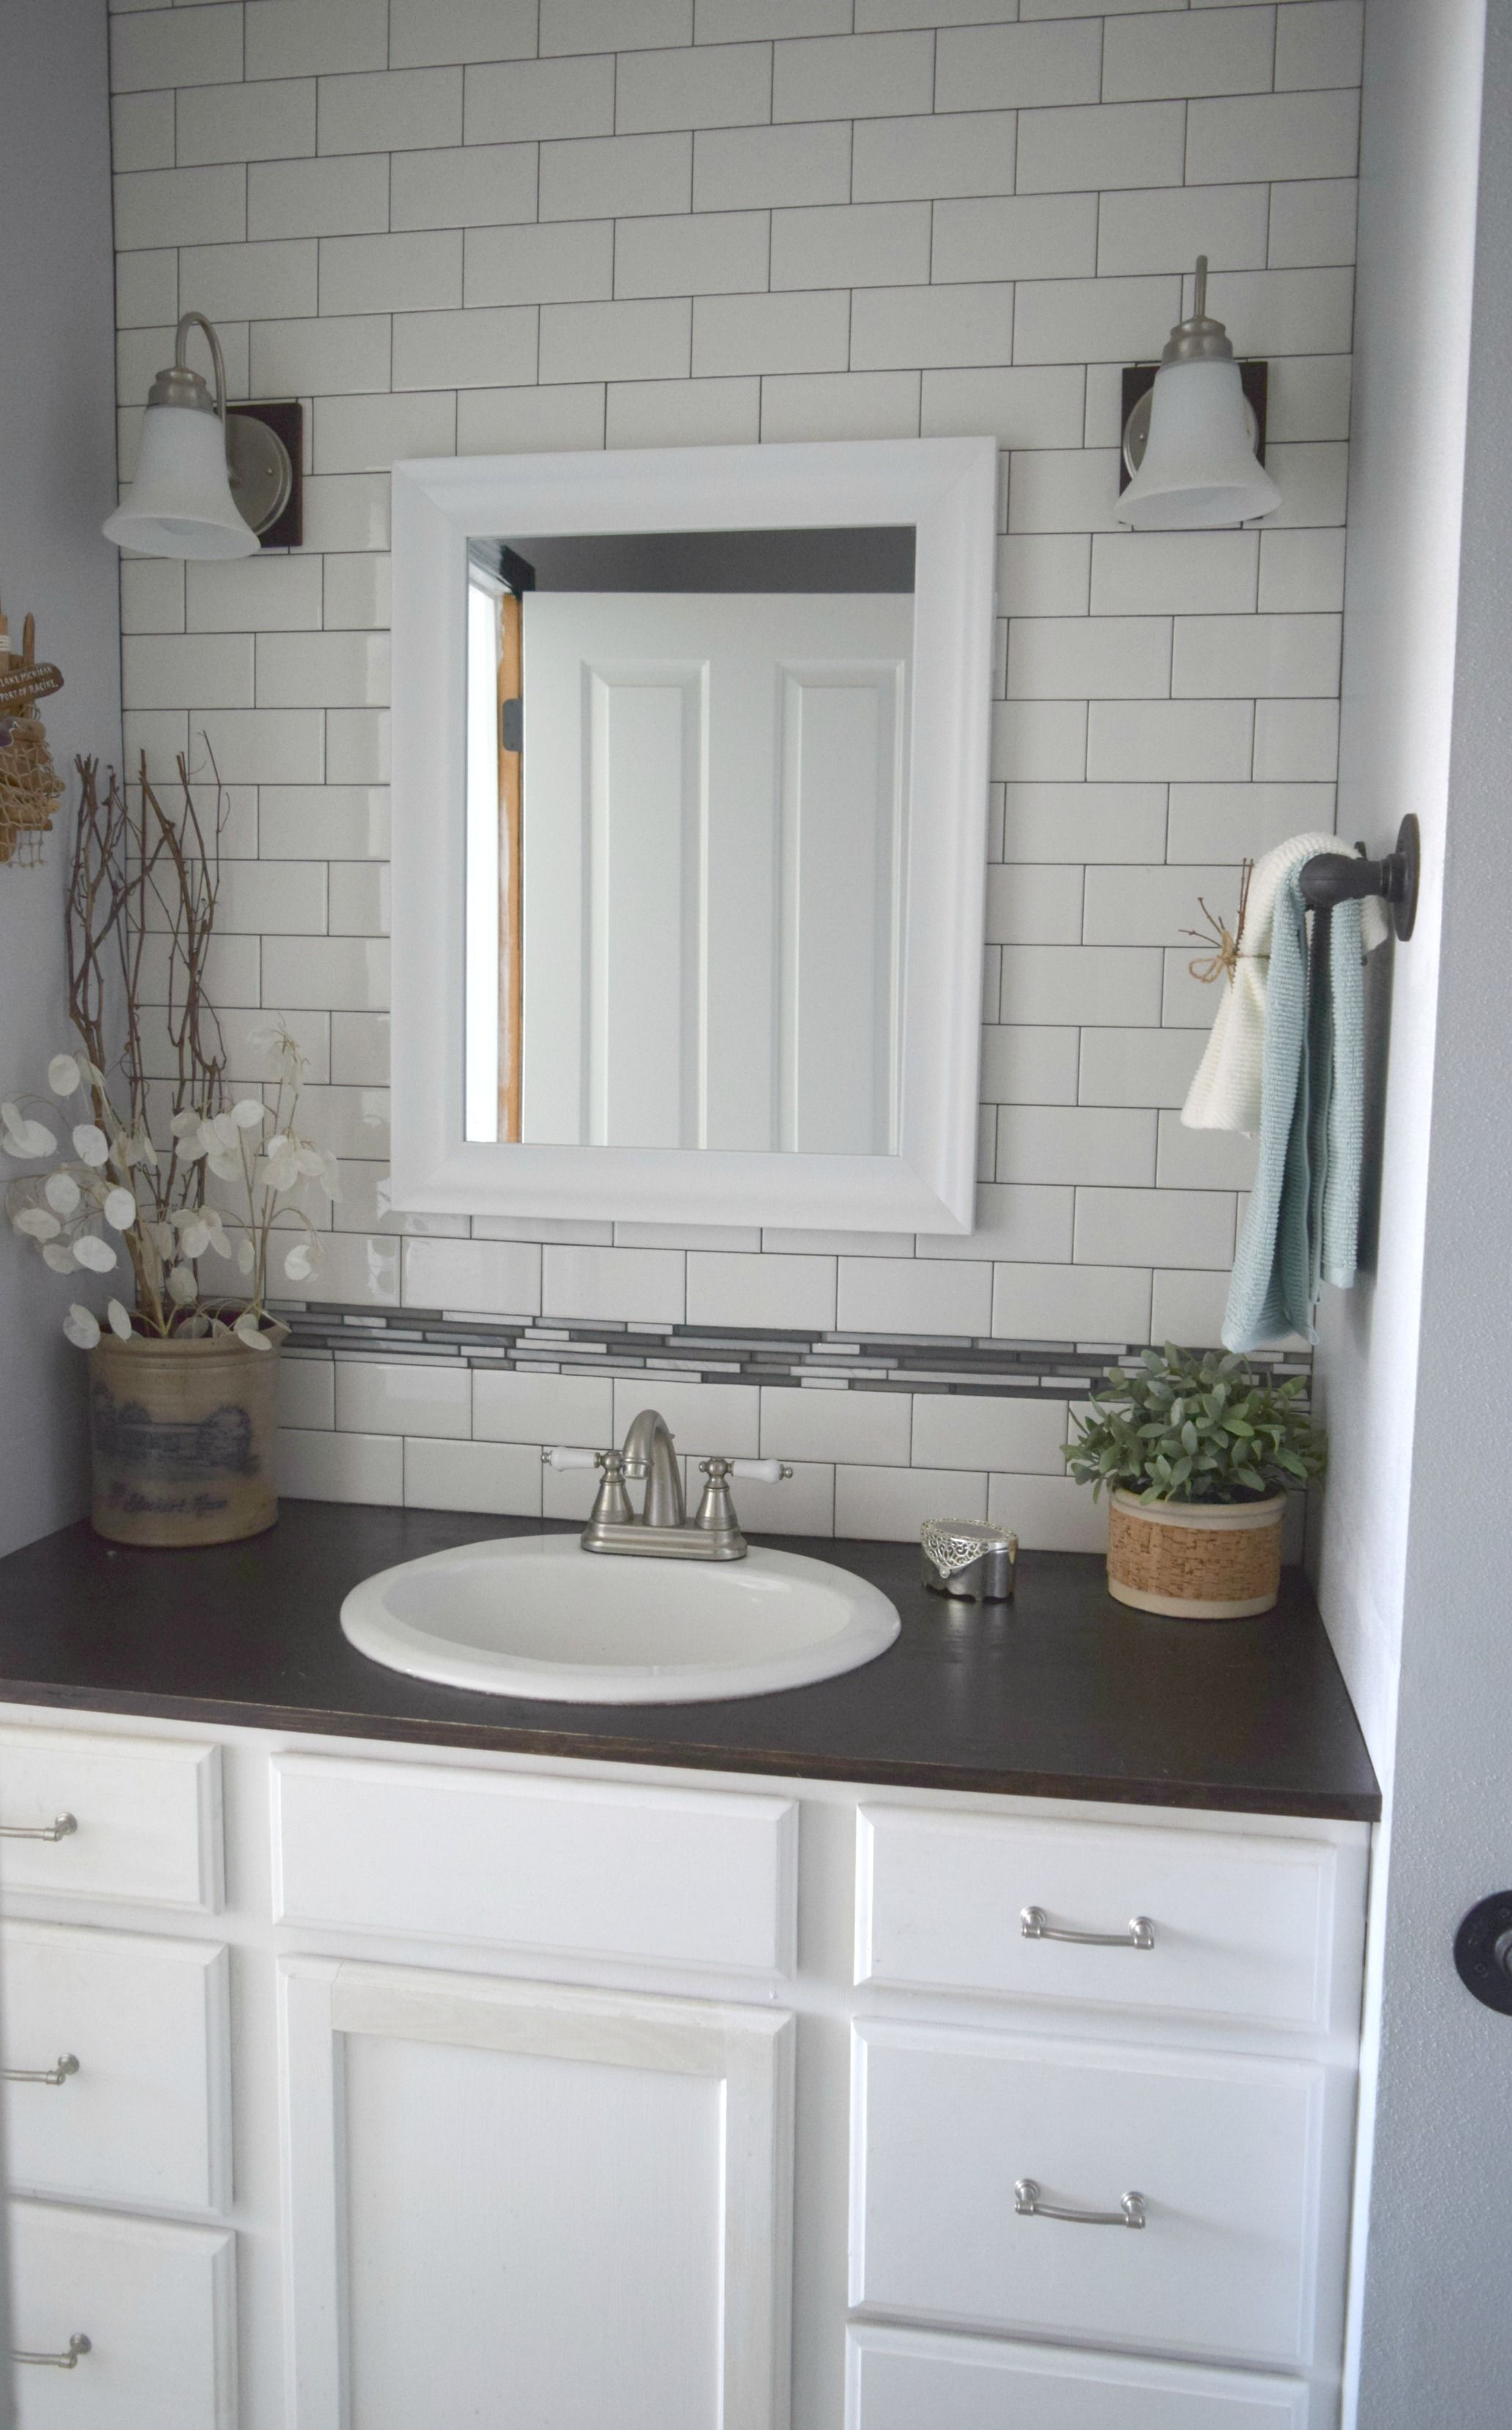 Bathroom and Kitchen Renovations You Can Afford